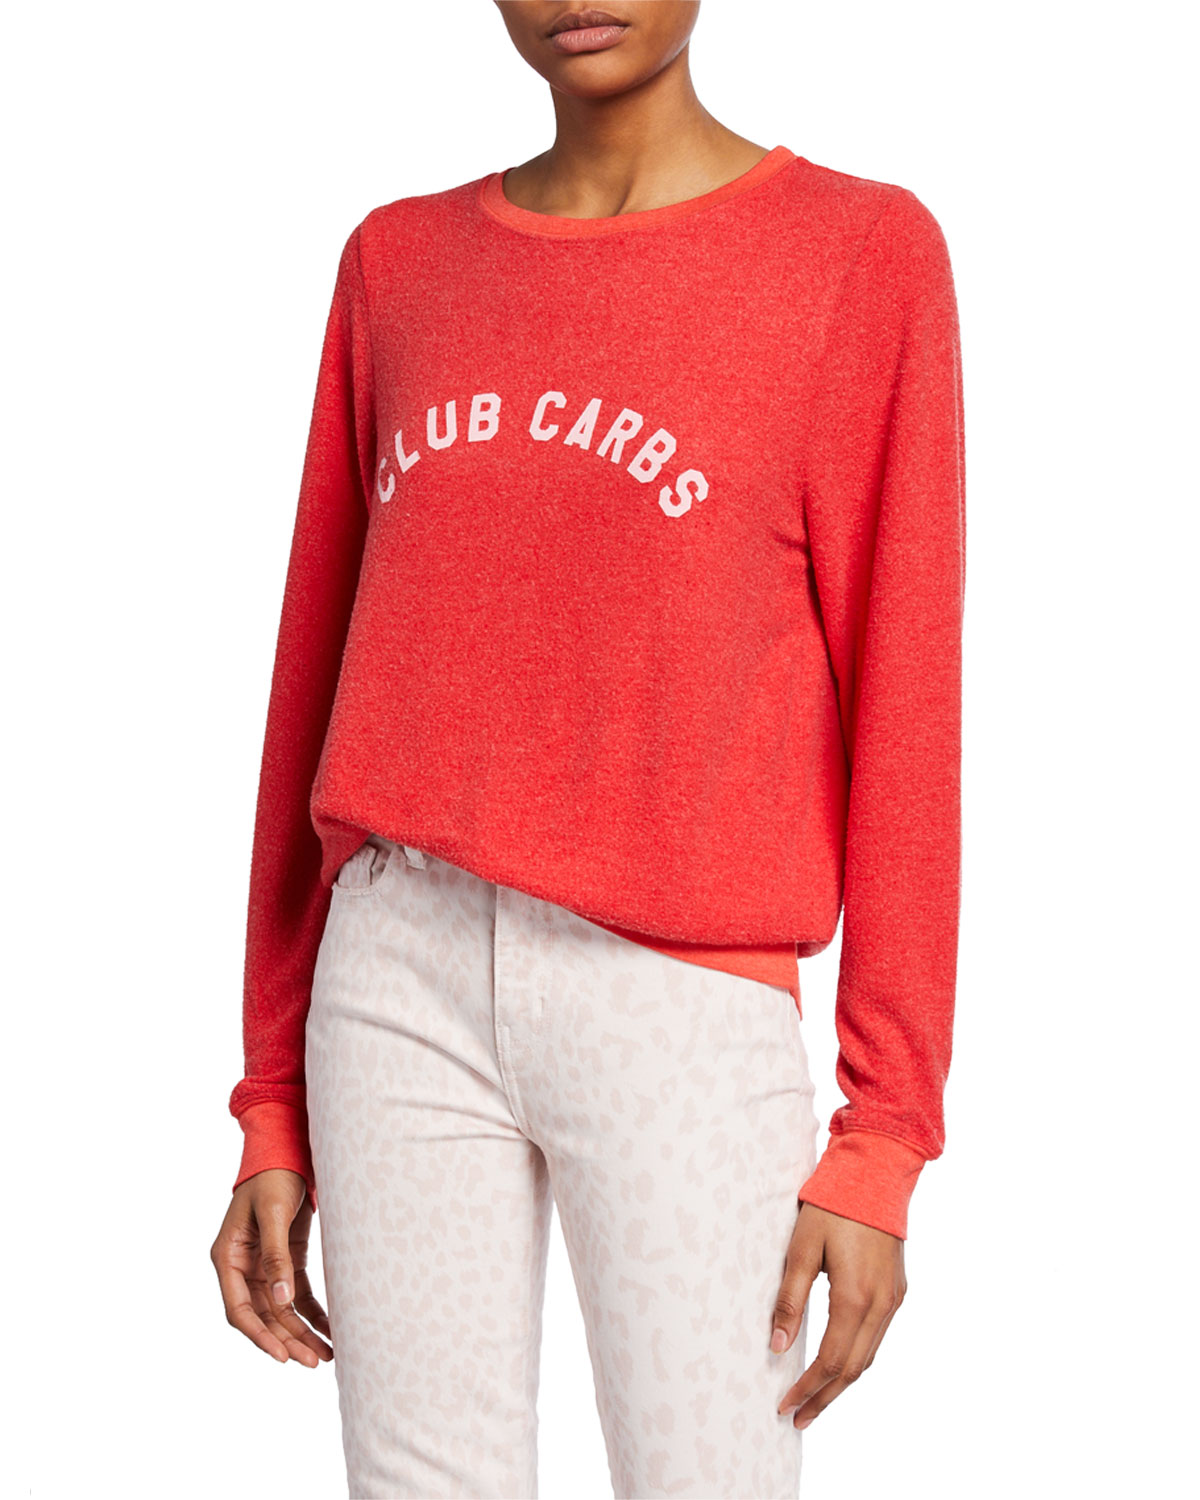 Wildfox Christmas Sweatshirt.Club Carbs Crewneck Long Sleeve Vintage Sweatshirt